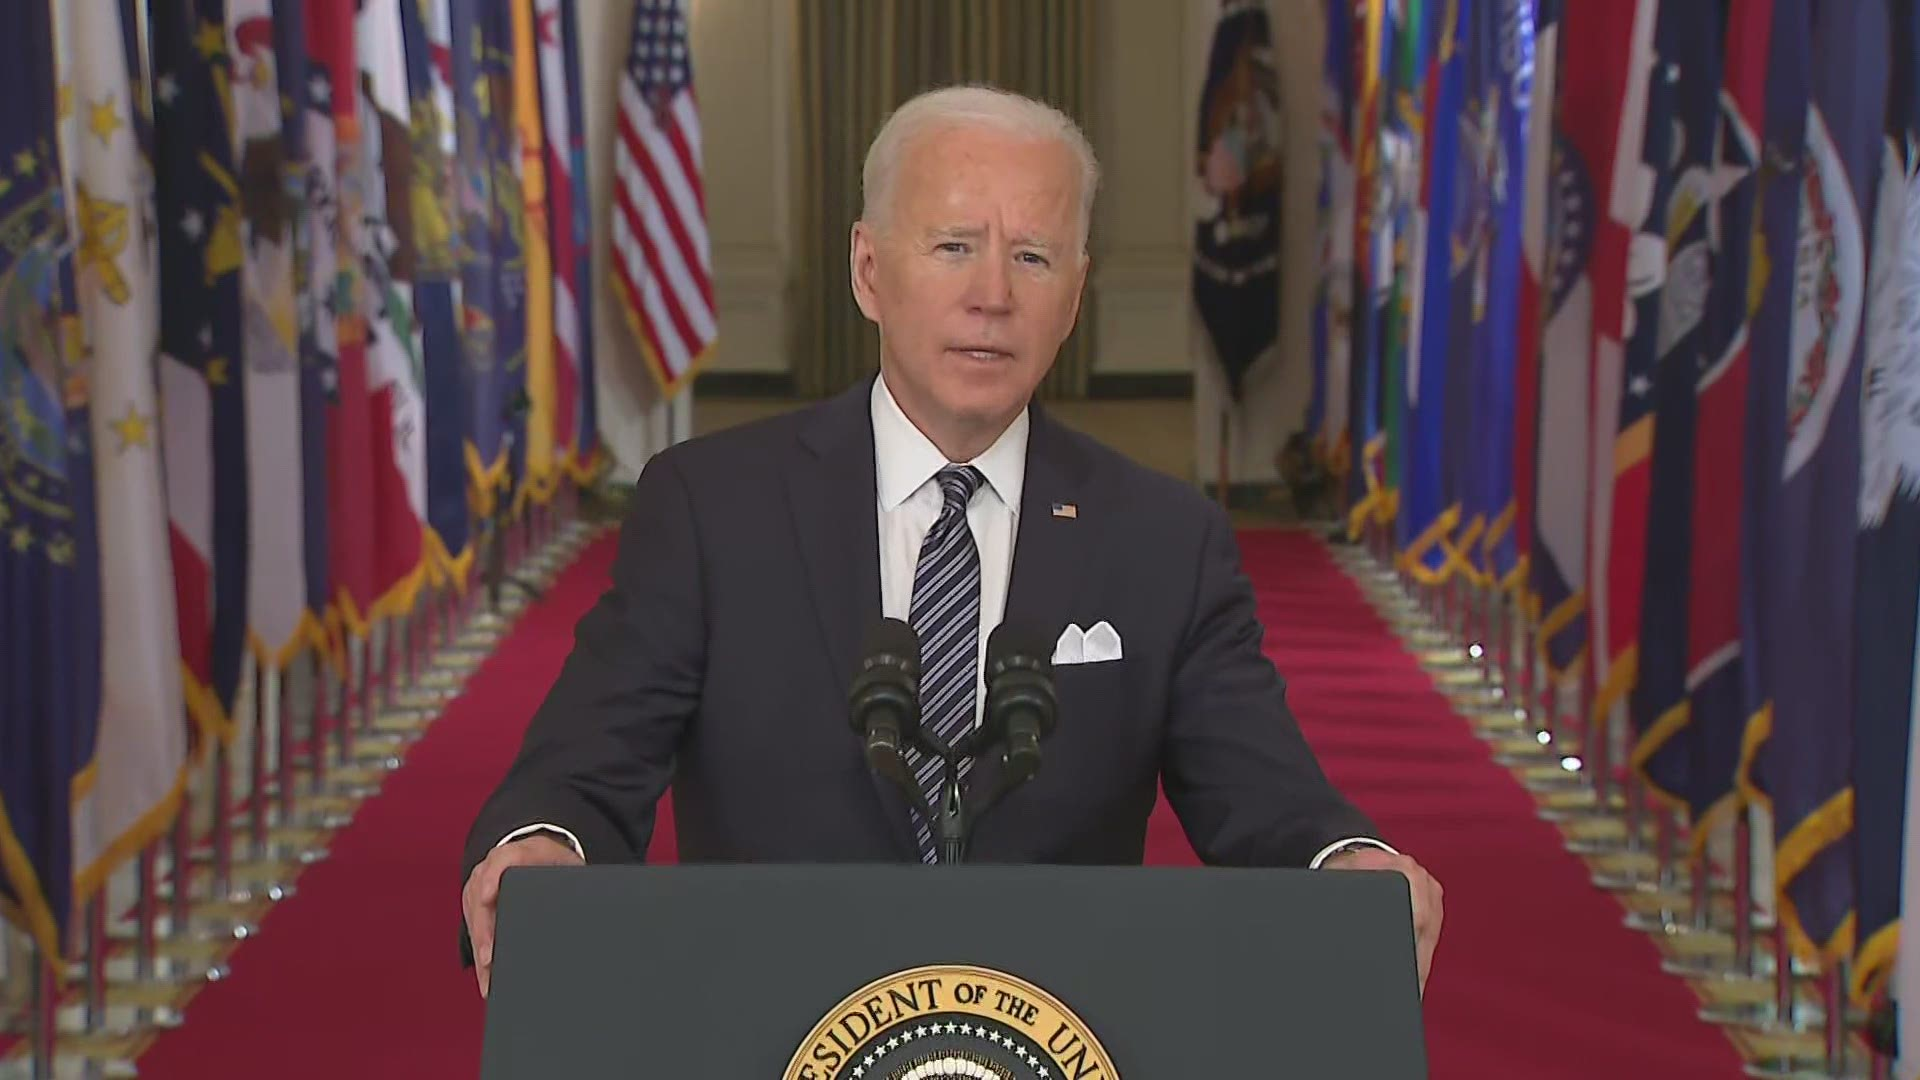 KLIF Morning News: Biden Confuses Obama and Trump, and a Democratic Mayor Want More Police